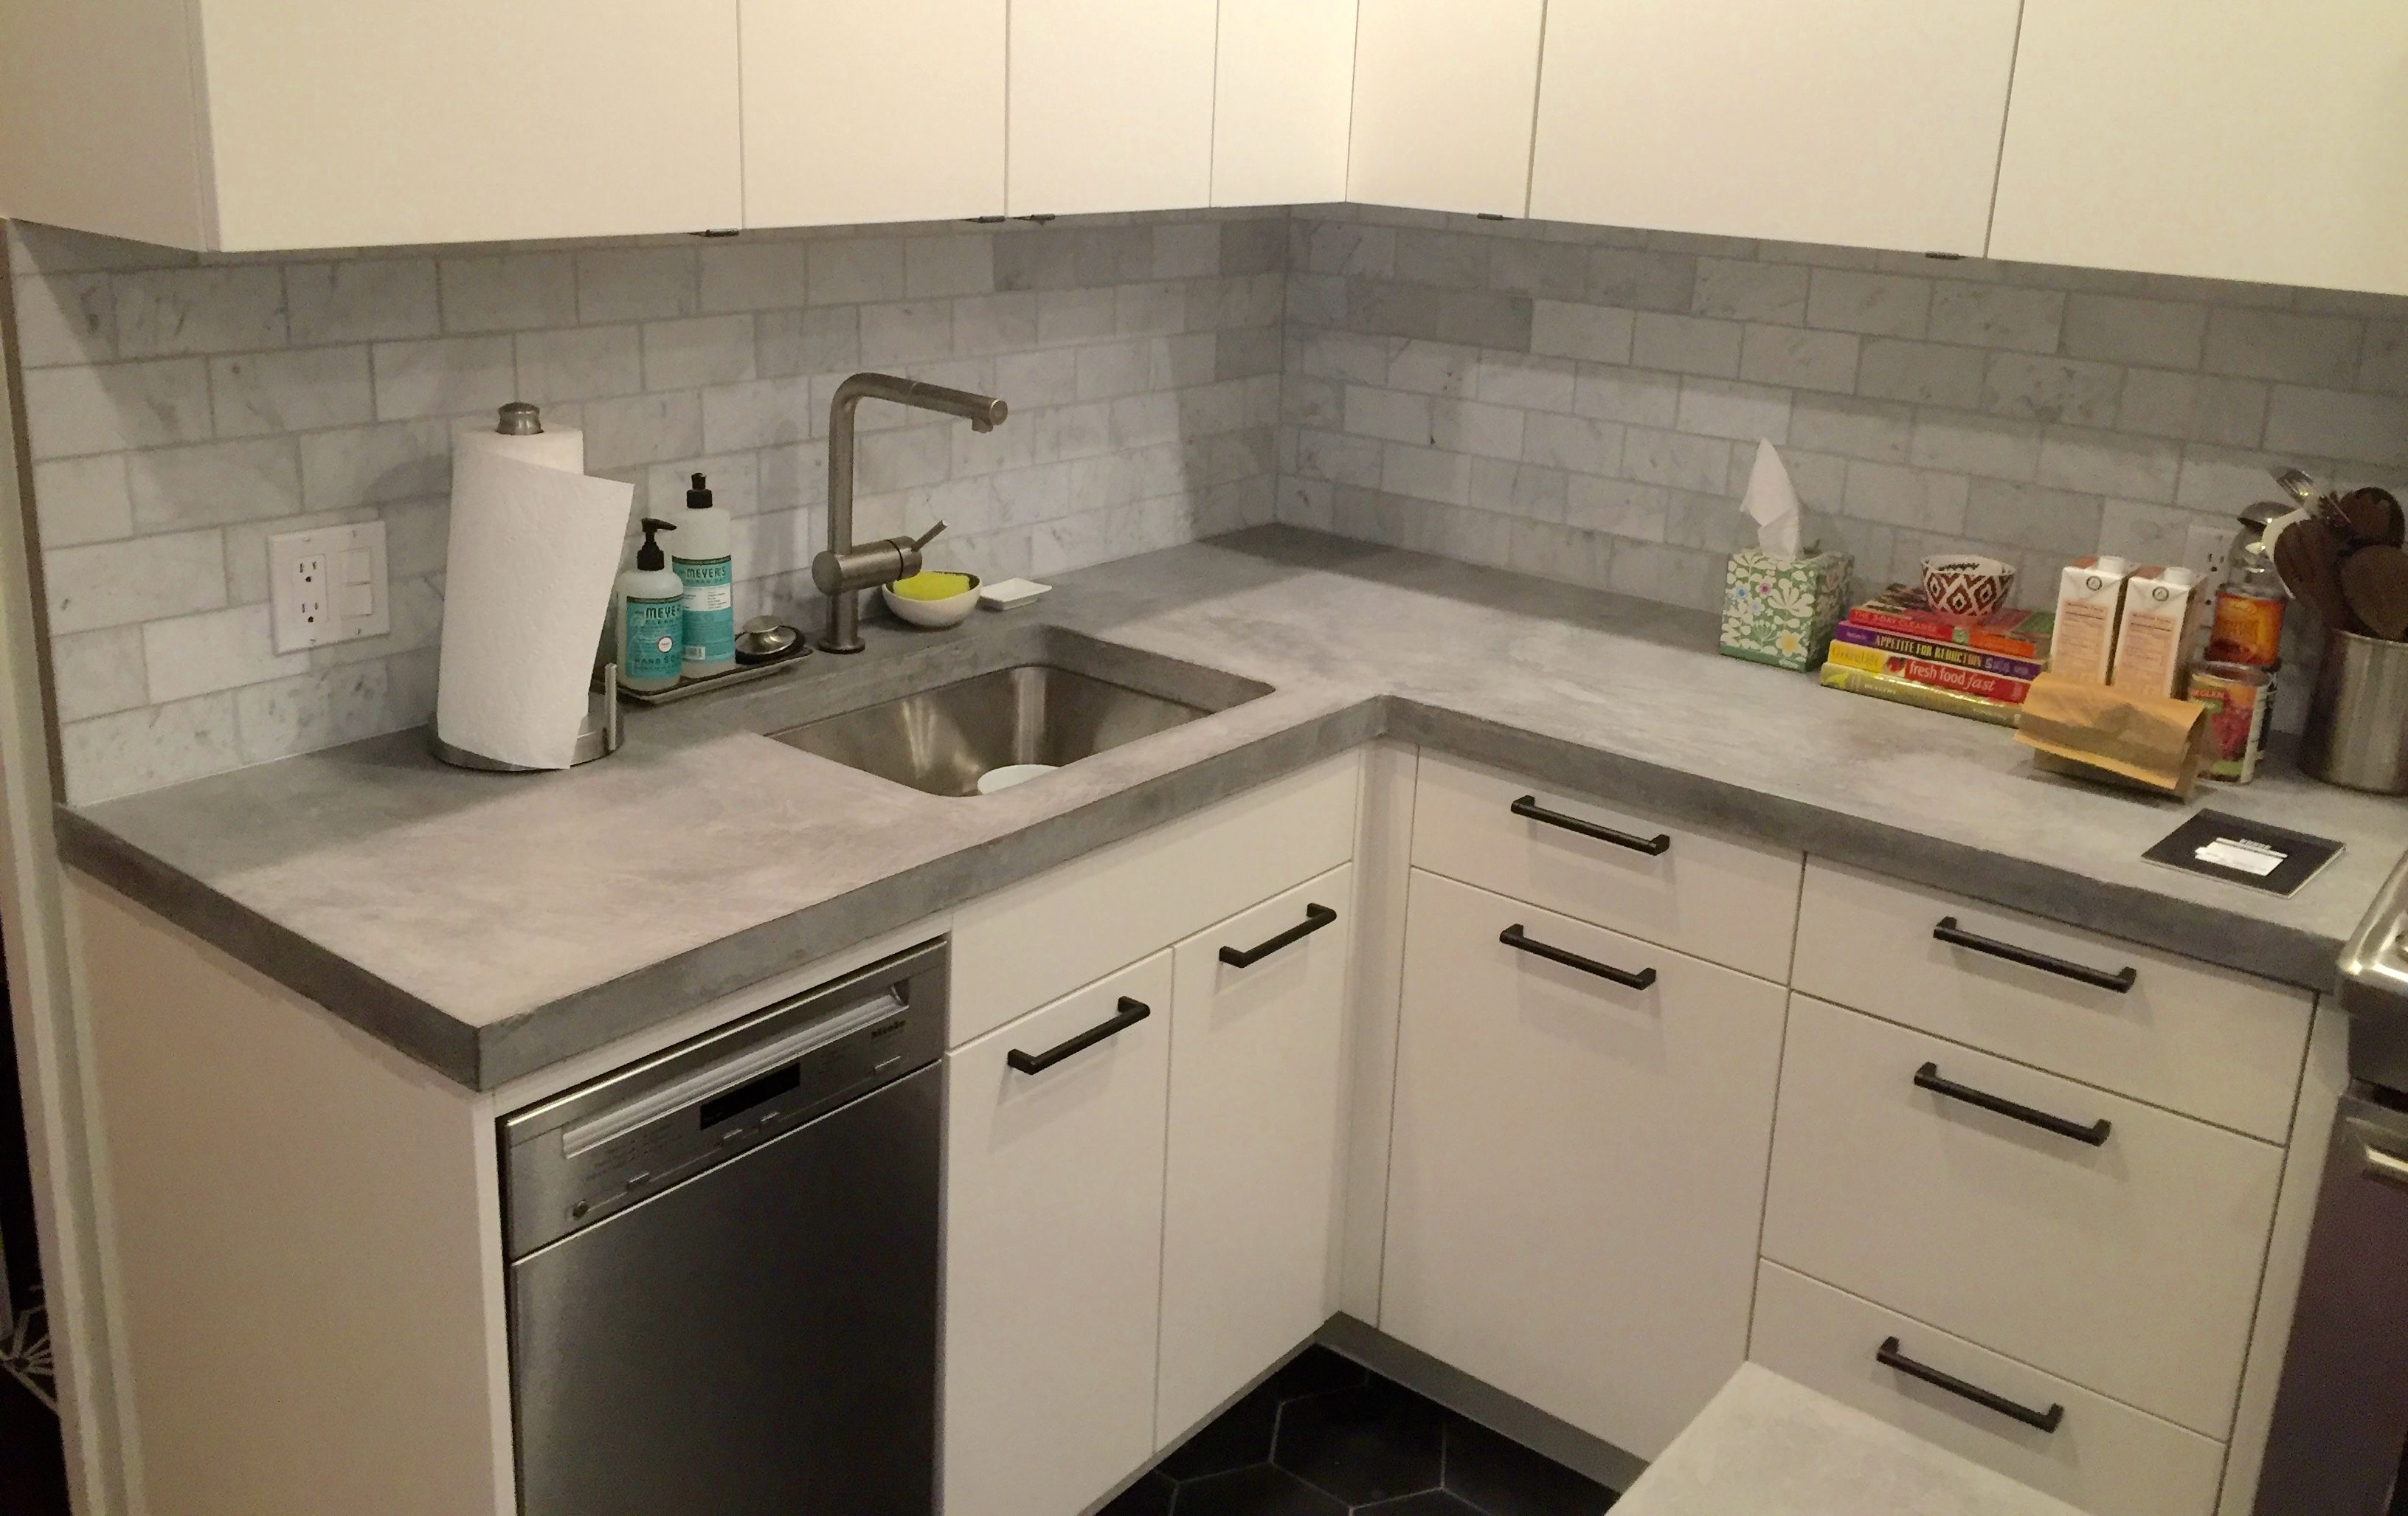 Cast In Place Concrete Countertops 1 5 Thick With Waterfall